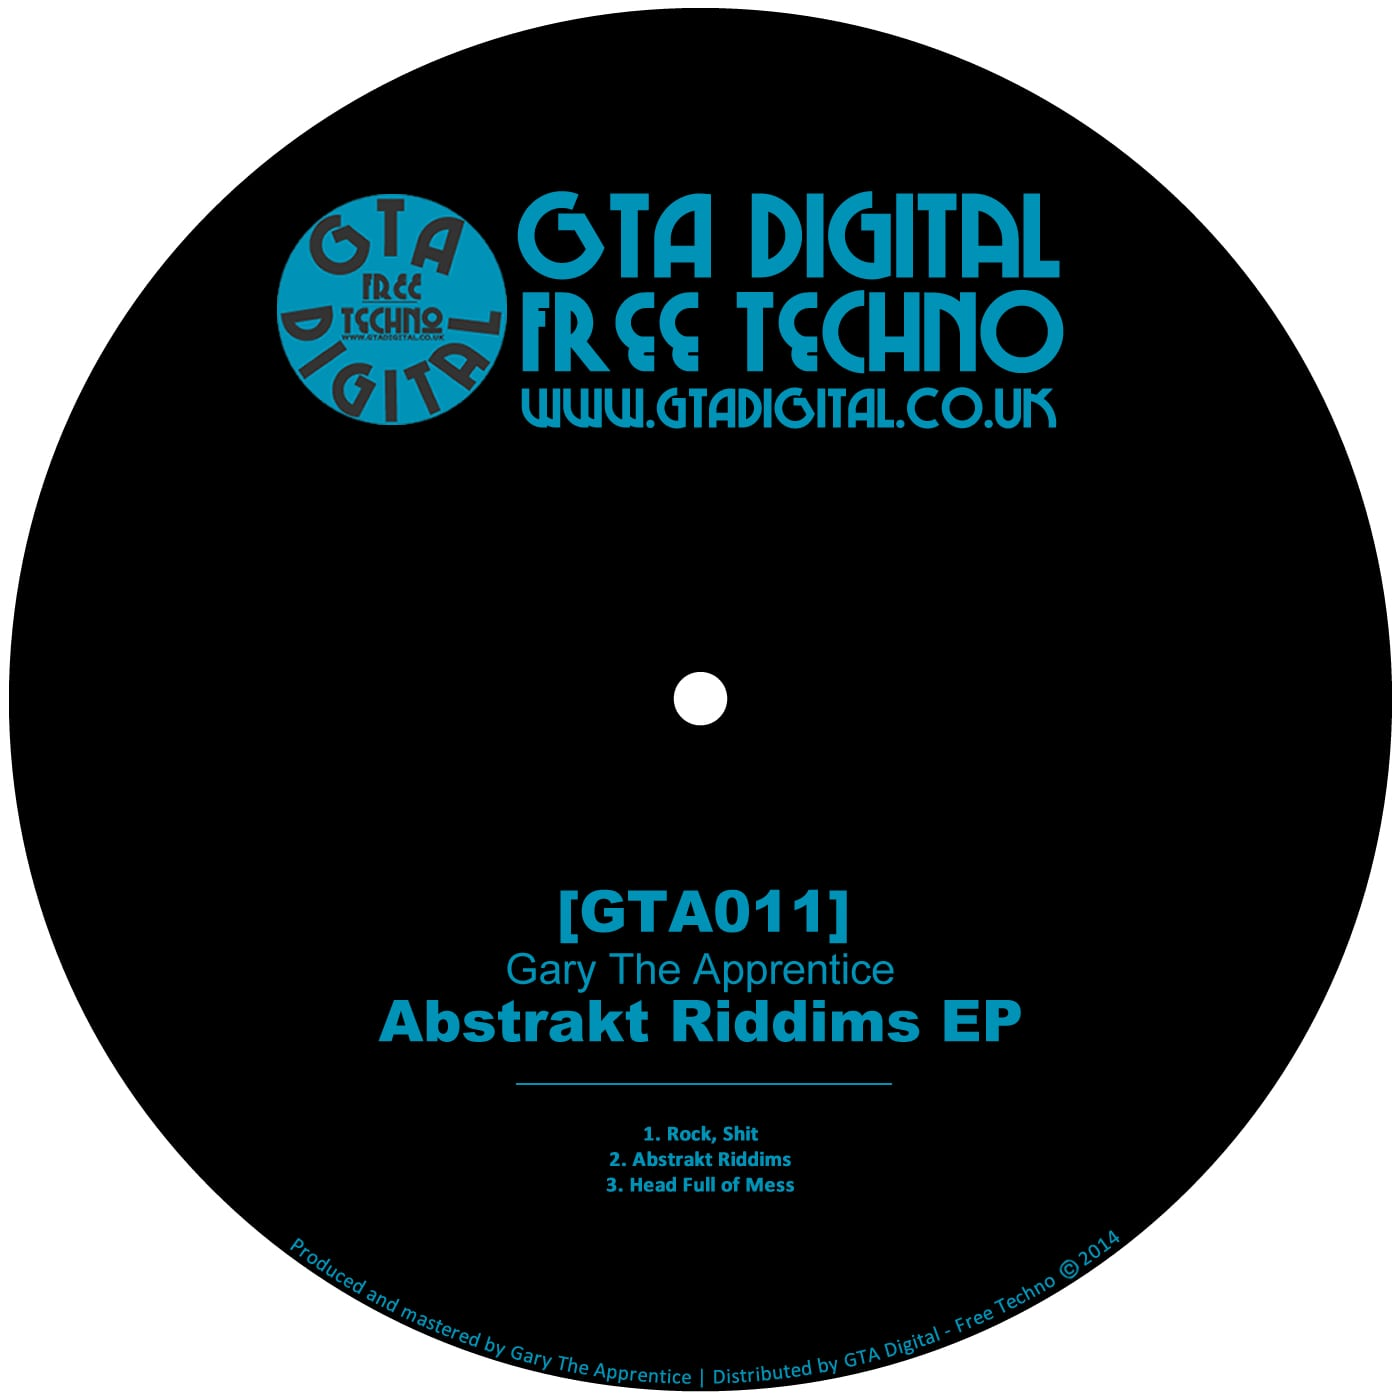 Abstrakt Riddims EP